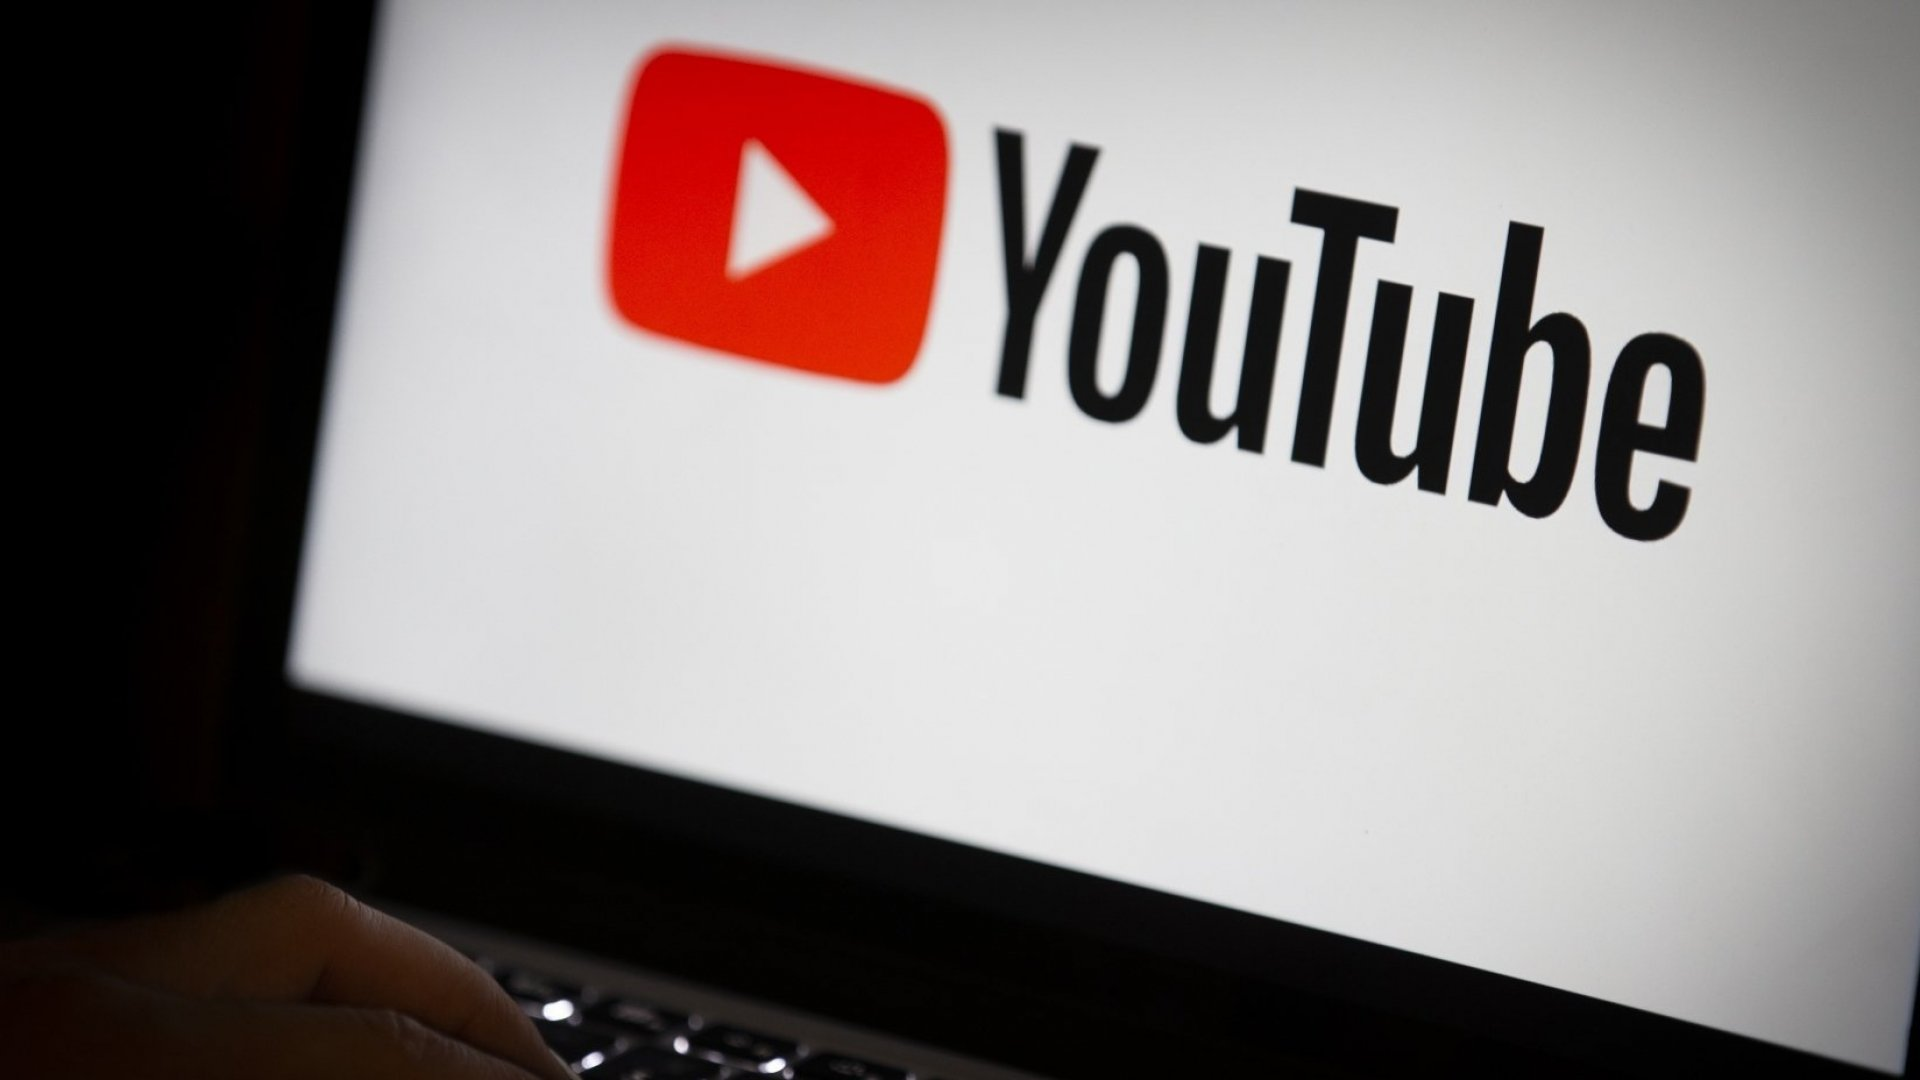 YouTube Analyzed Trillions of Data Points in 2018, Revealing 5 Eye-Opening Behavioral Statistics